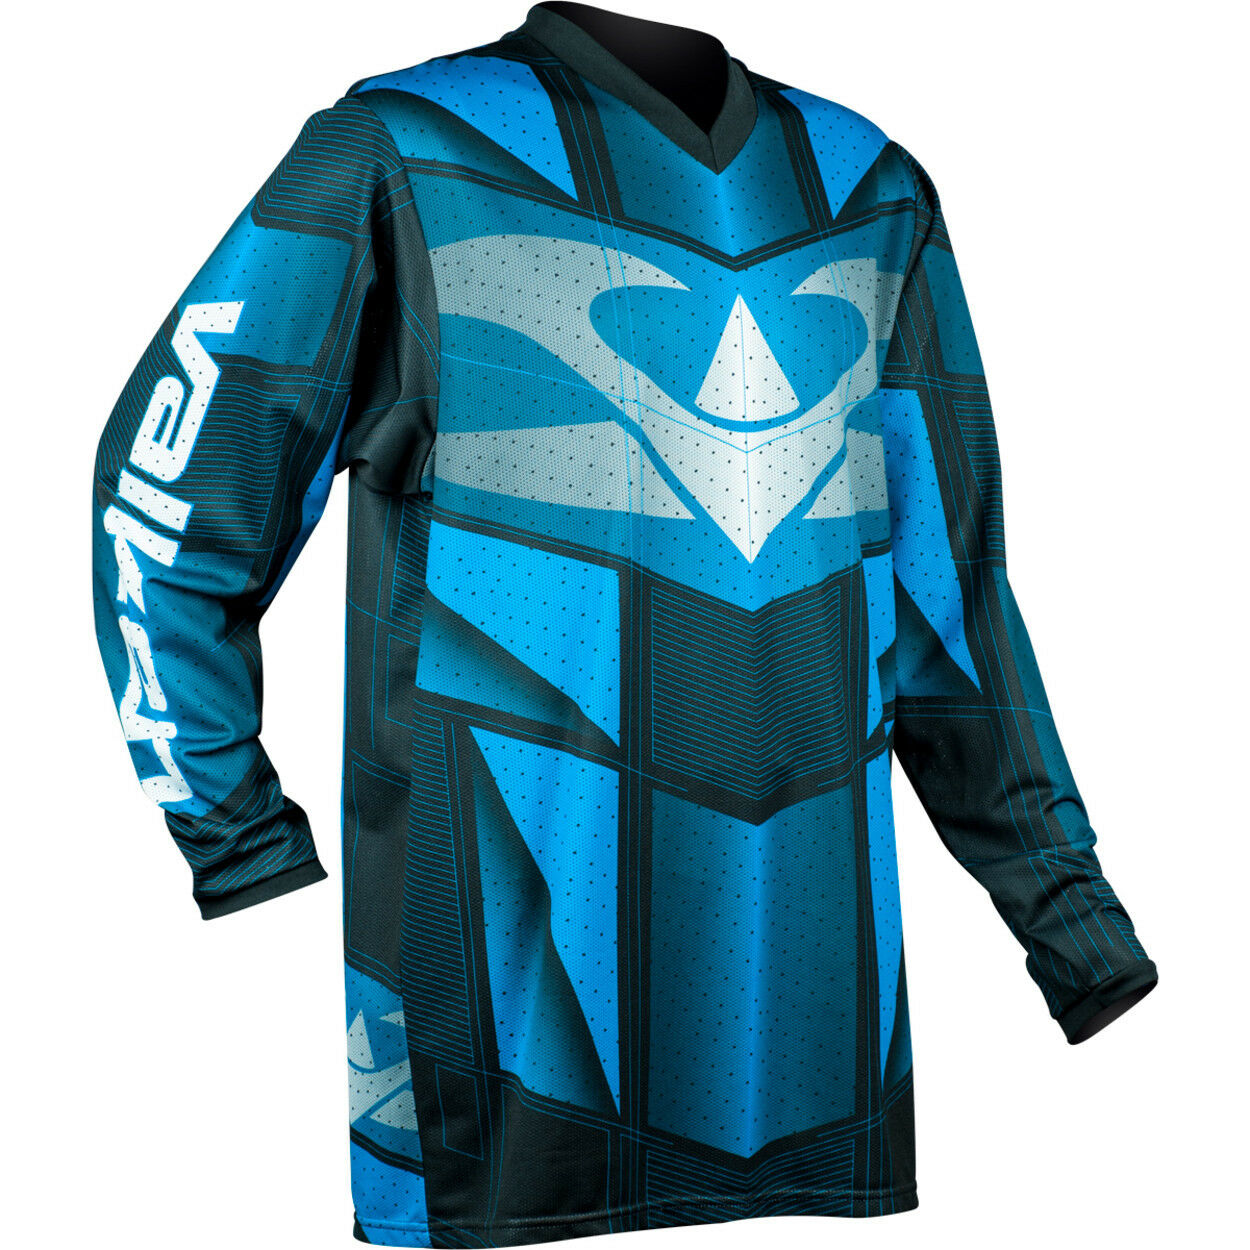 New Valken Paintball Airsoft VTac V-Tac EXO Playing Jersey - bluee - Large L